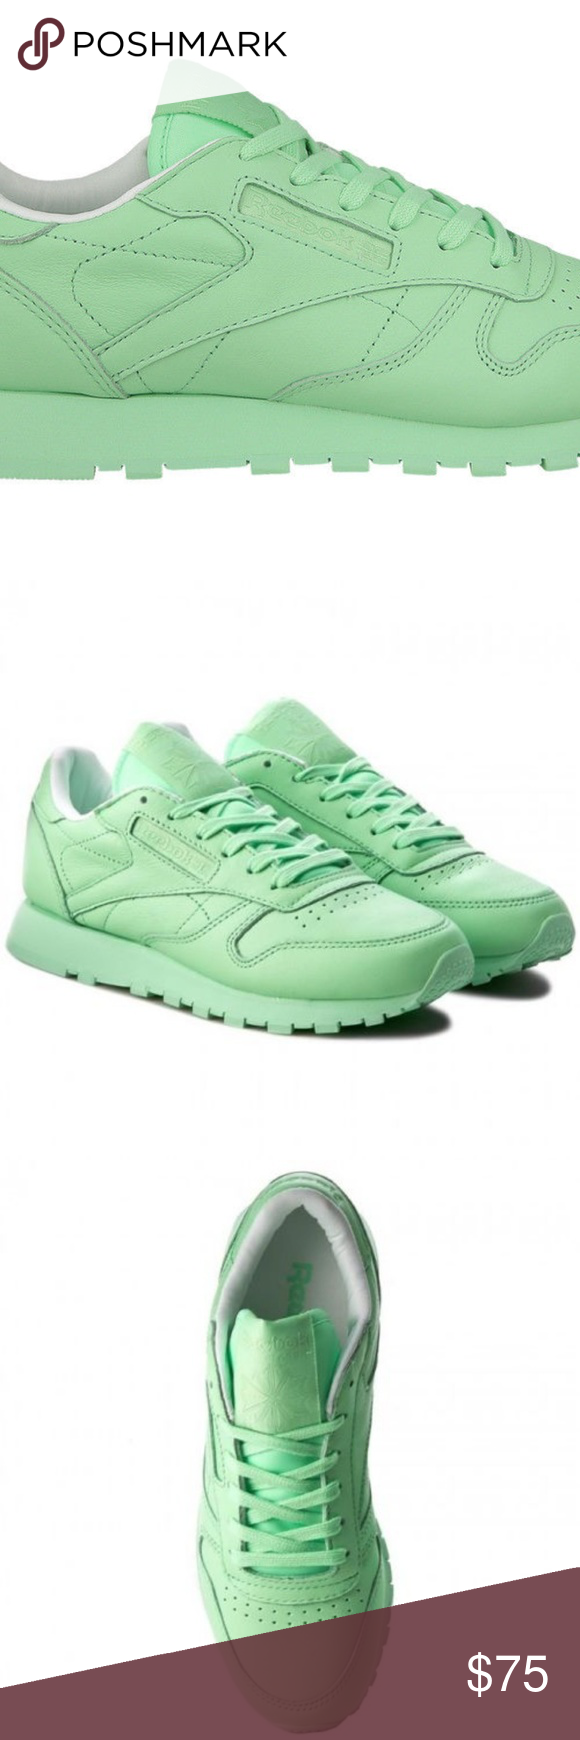 (BD2773) WOMEN S REEBOK CLASSIC LEATHER PASTELS Condition  New with box  A  brand 9188d21c1